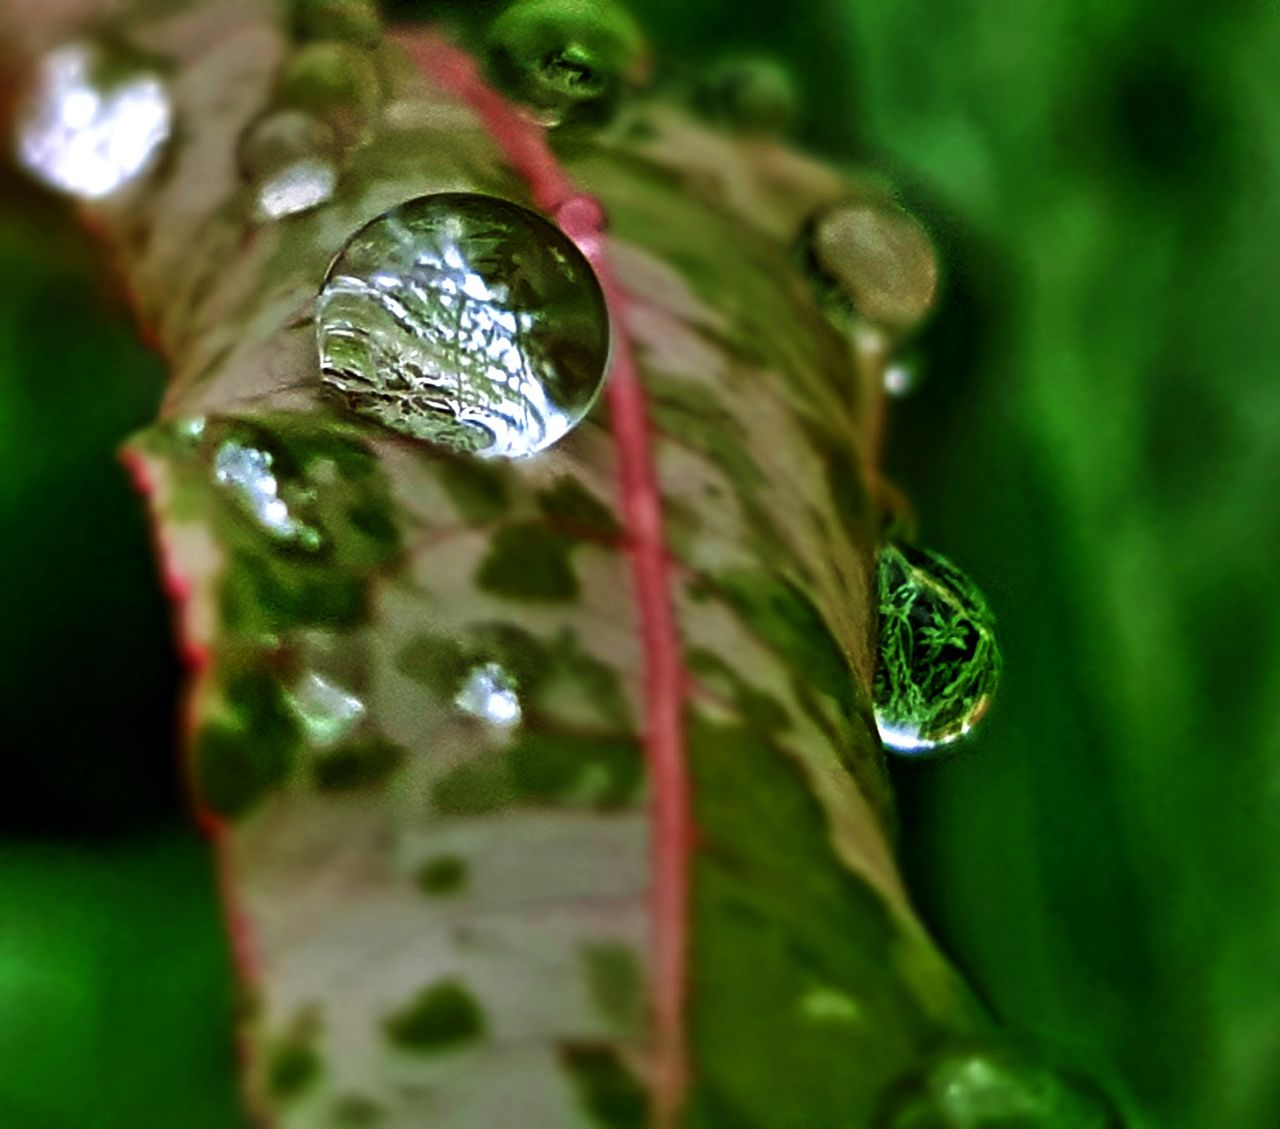 close-up, drop, green color, plant, selective focus, plant part, leaf, wet, no people, nature, water, beauty in nature, growth, purity, focus on foreground, day, dew, reflection, outdoors, raindrop, blade of grass